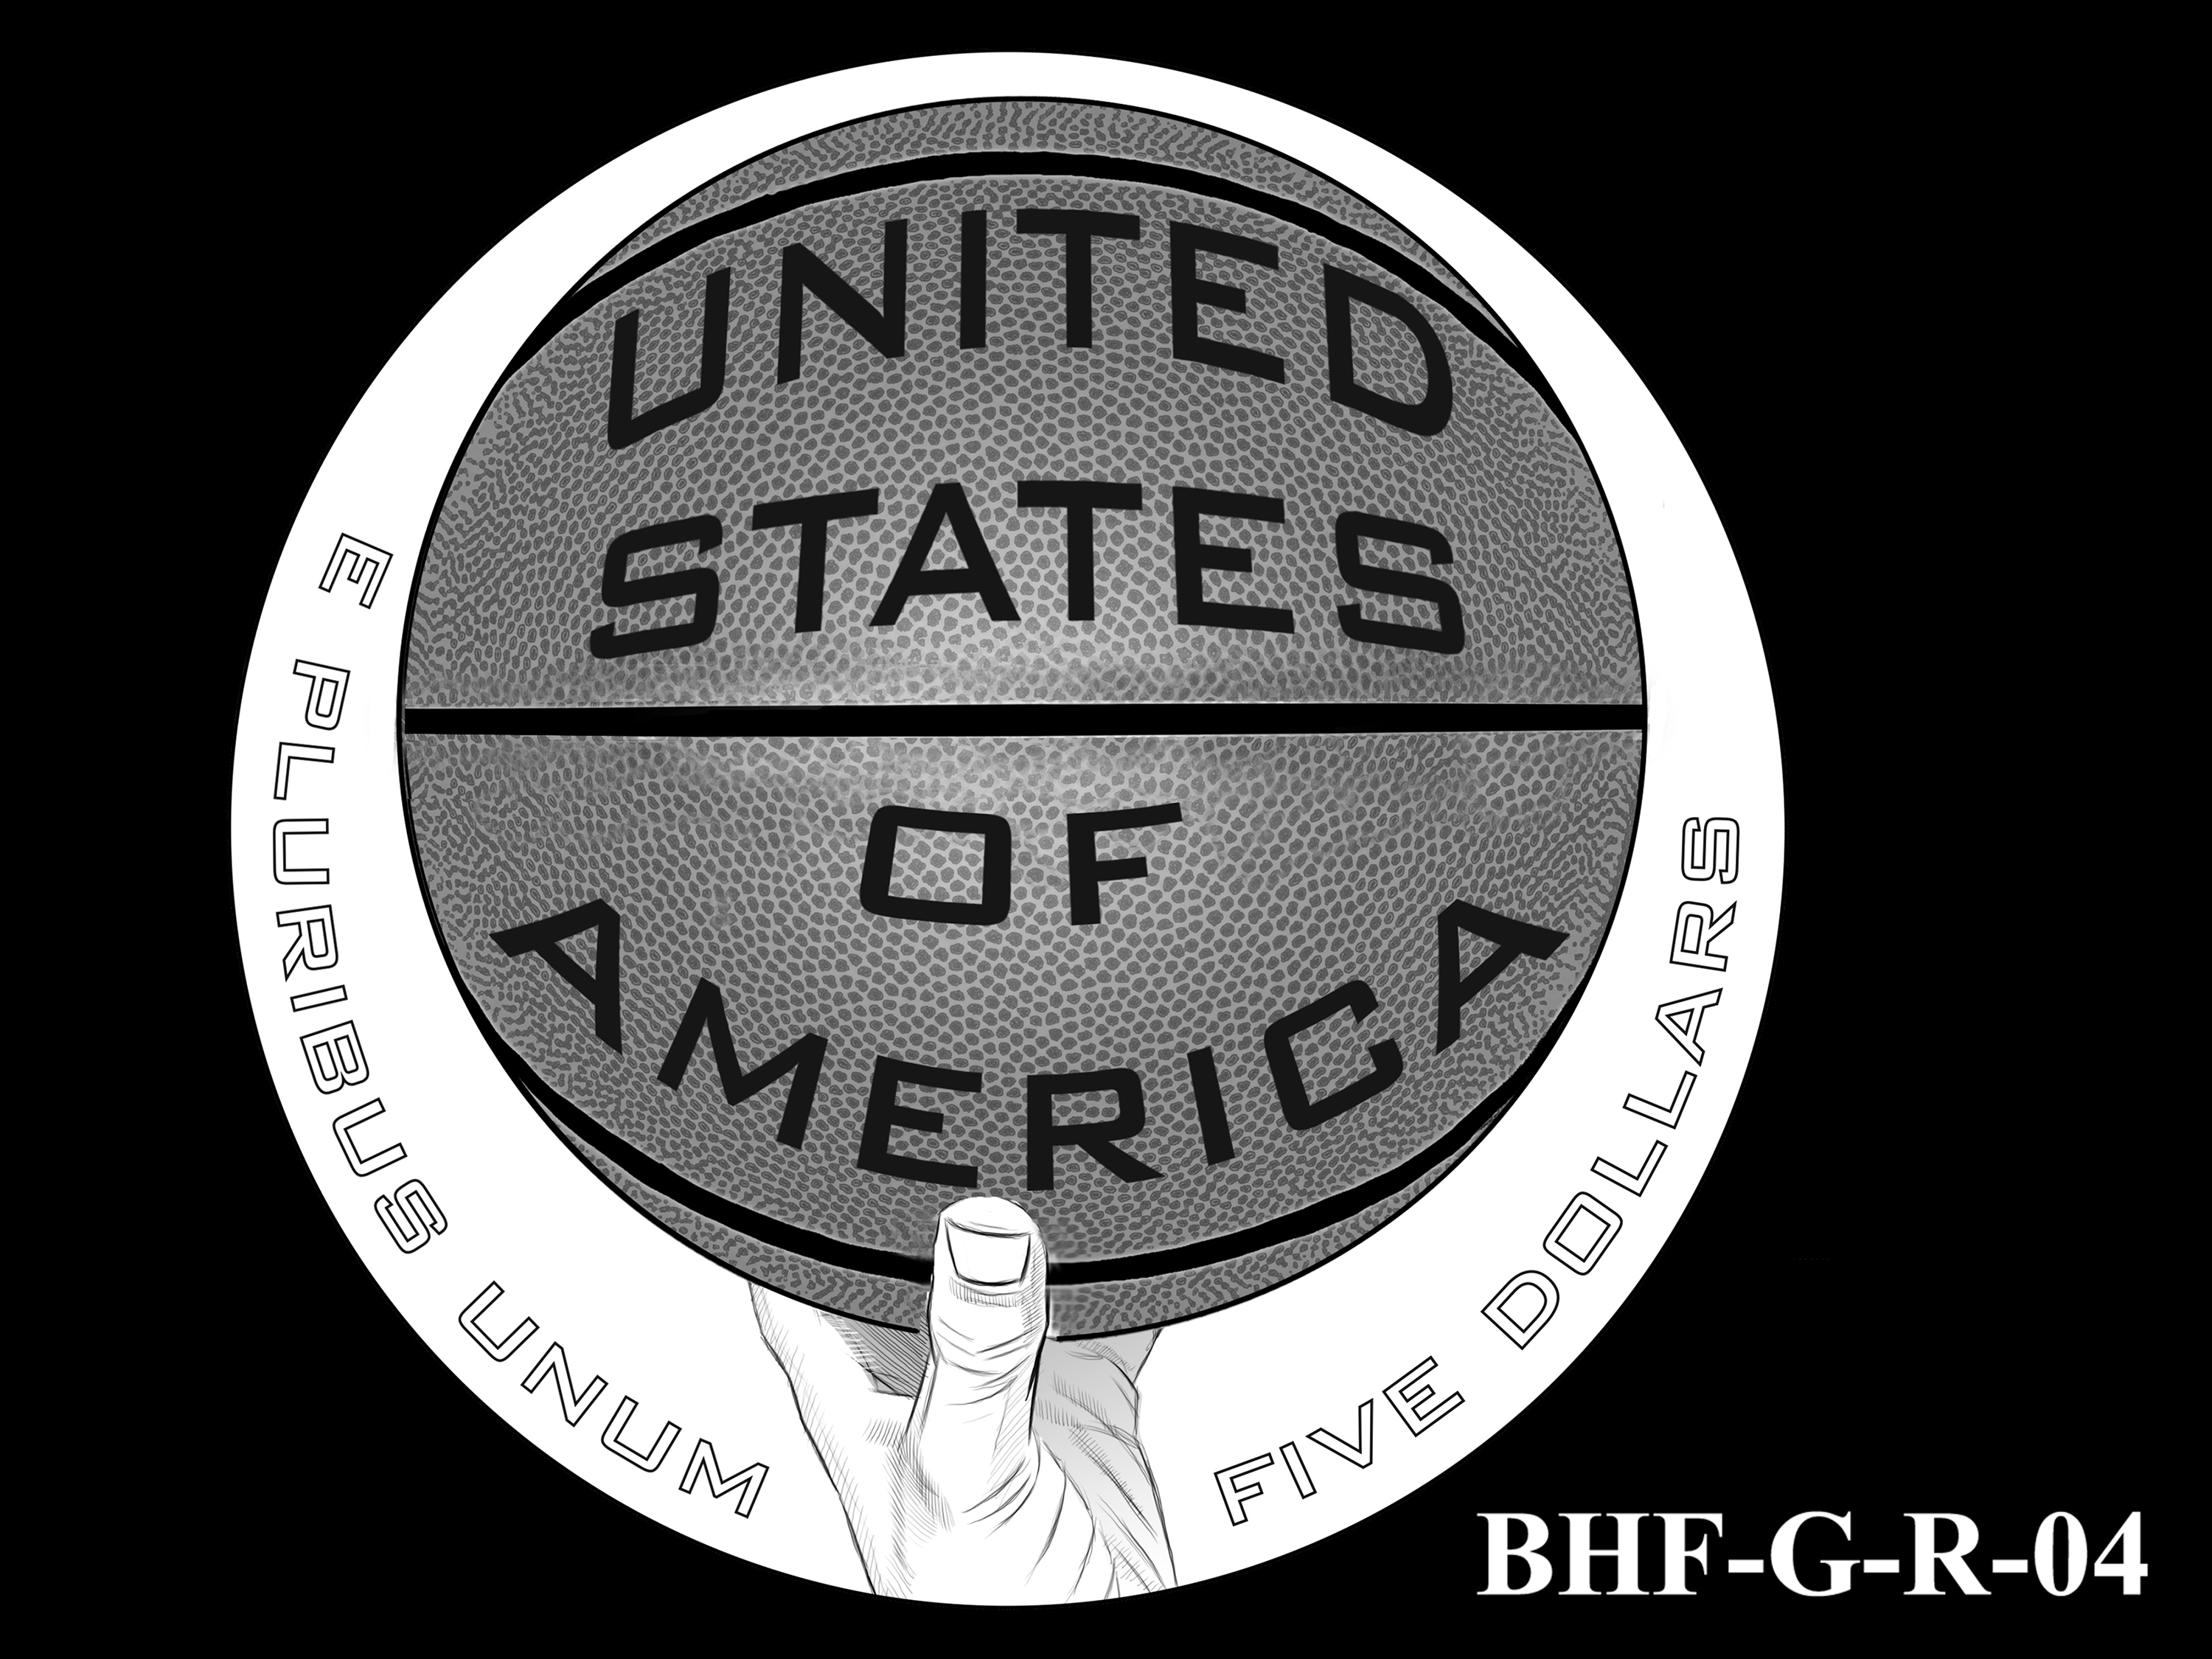 BHF-G-R-04 -- 2020 Basketball Hall of Fame Commemorative Coin Program - Gold Reverse